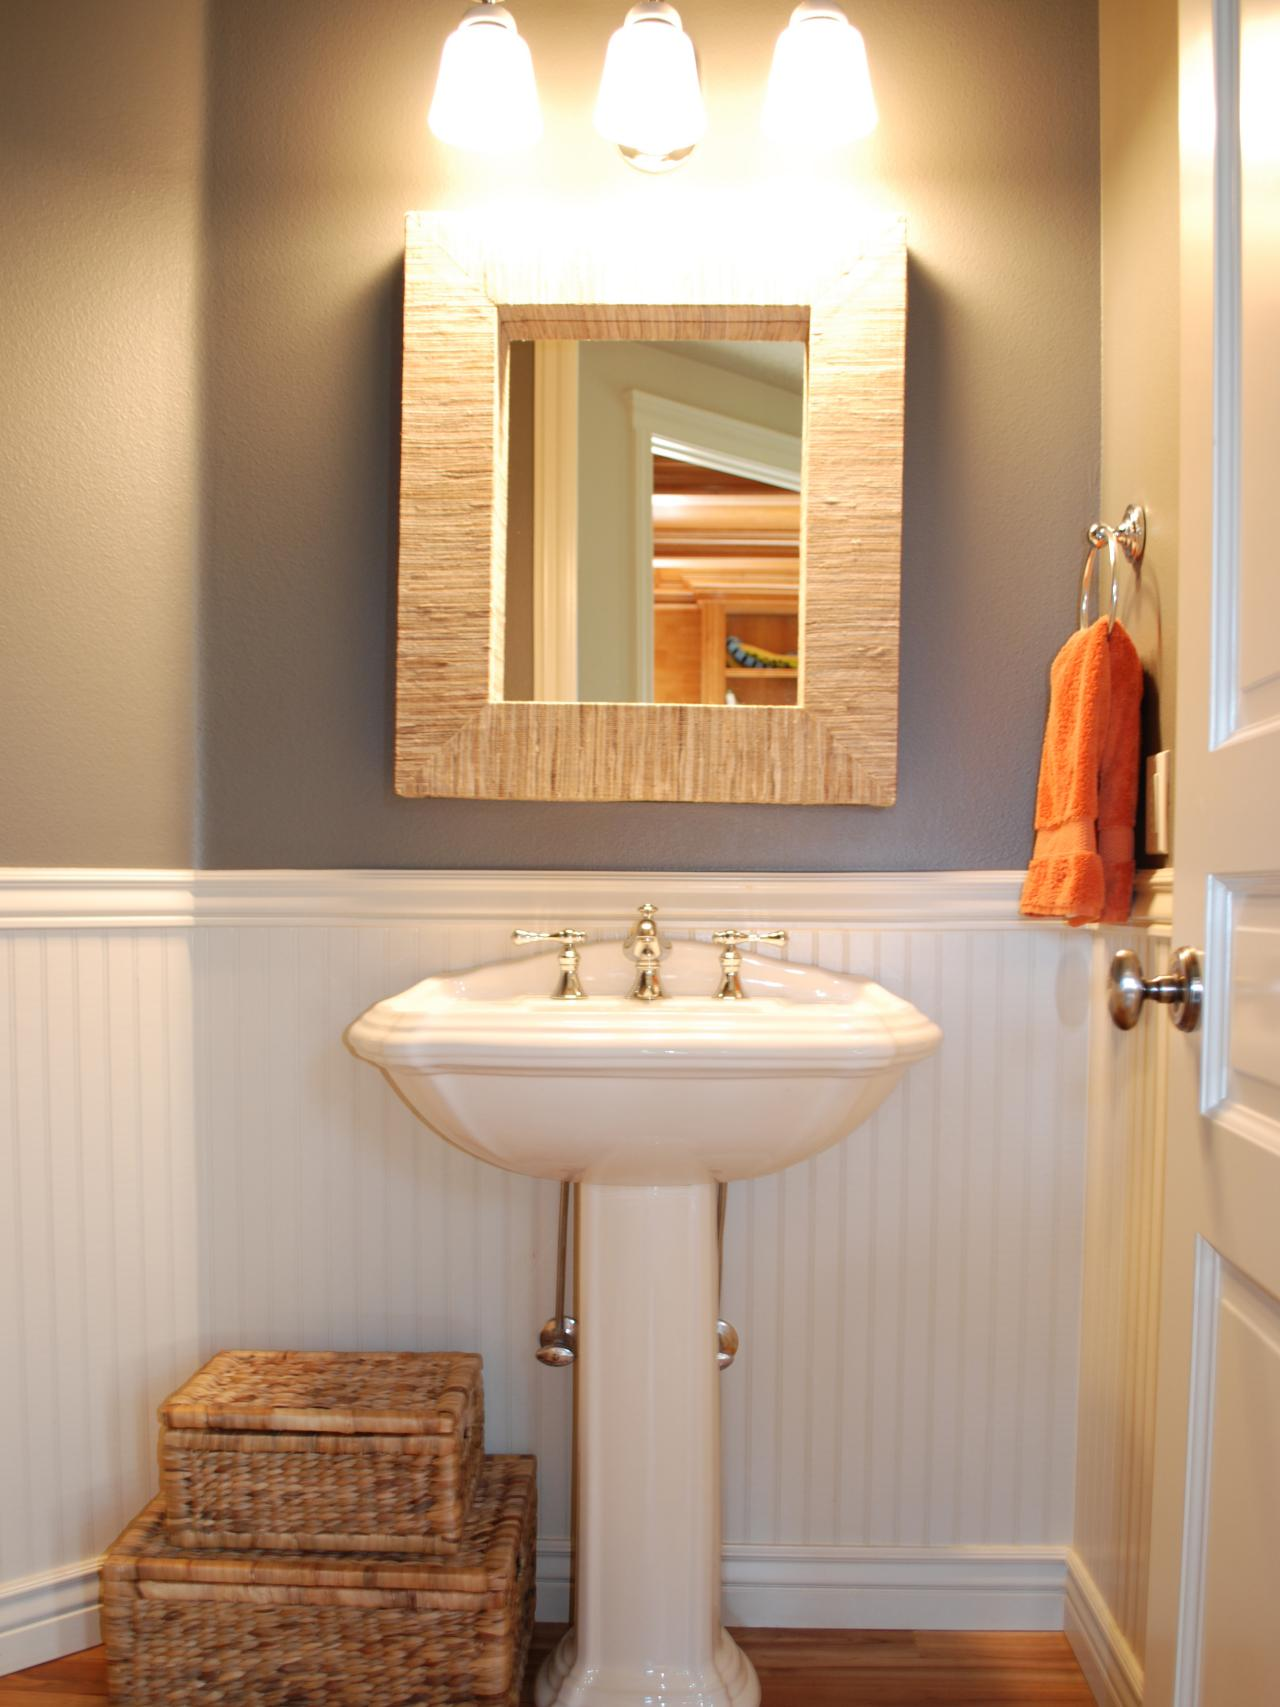 12 clever bathroom storage ideas bathroom ideas for Bathroom wainscoting ideas